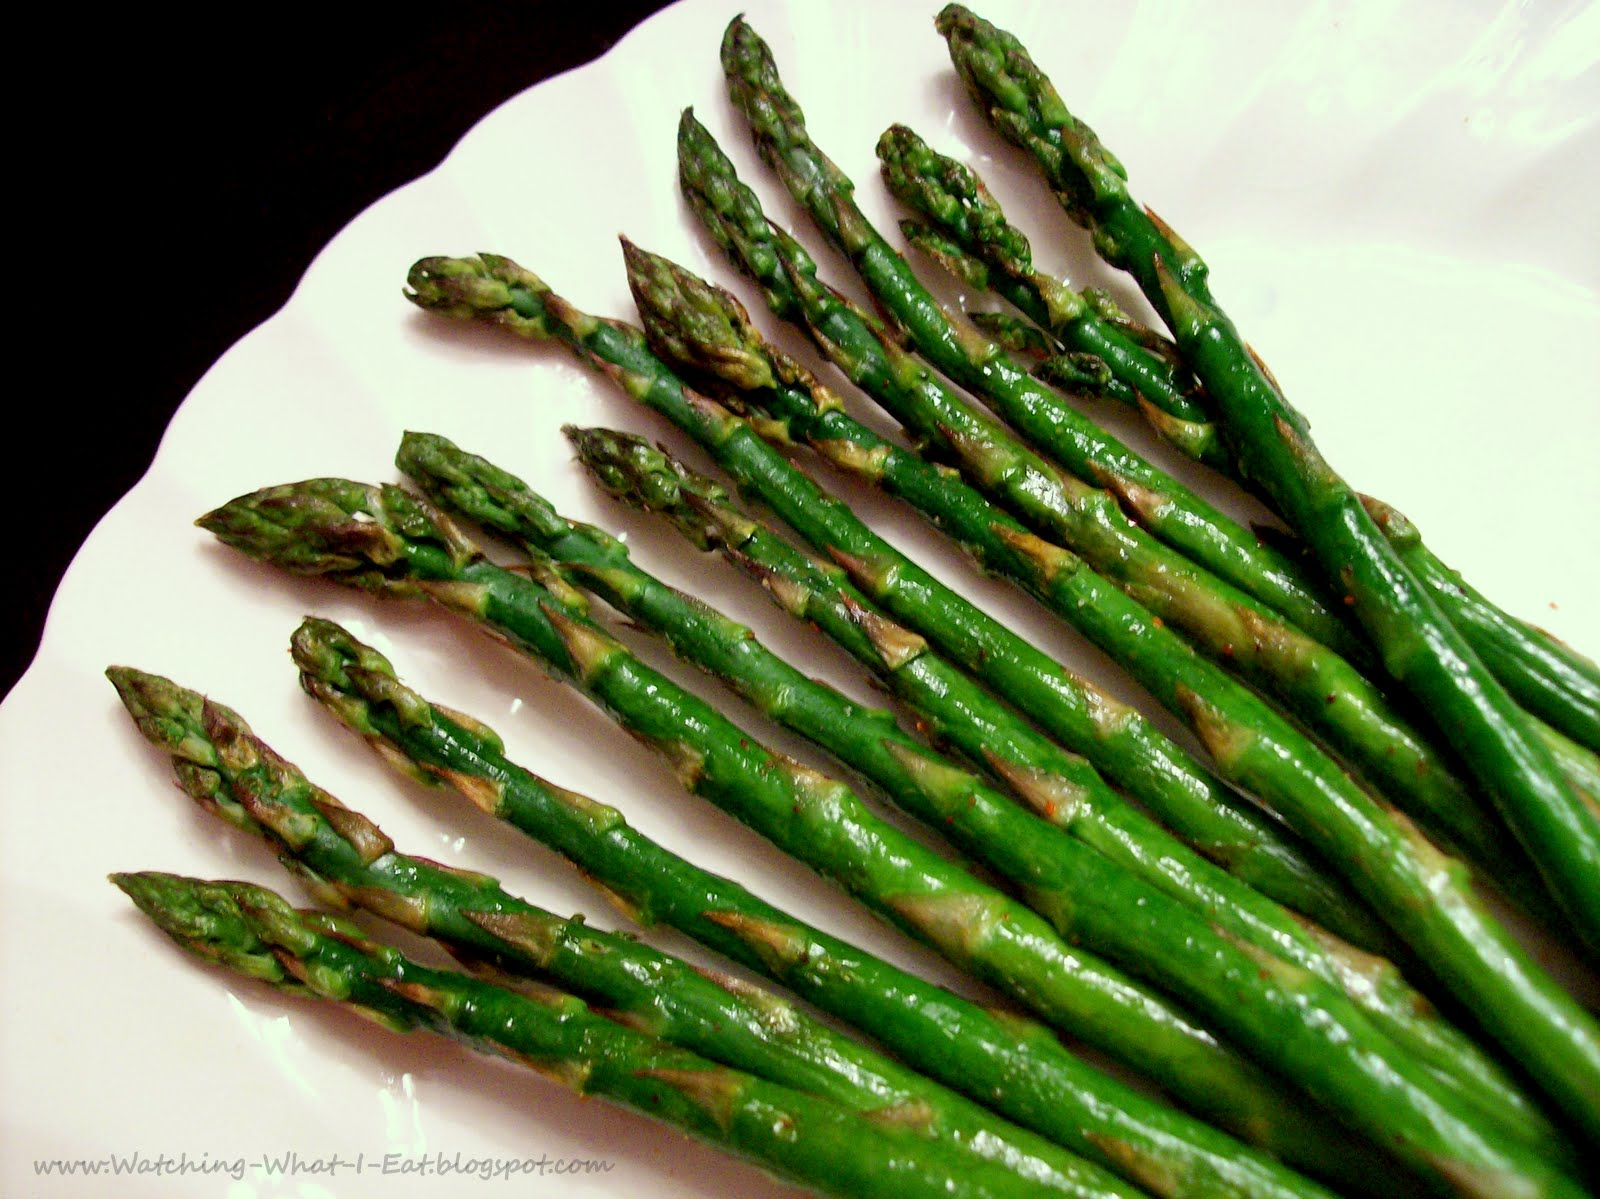 Watching What I Eat: asparagus